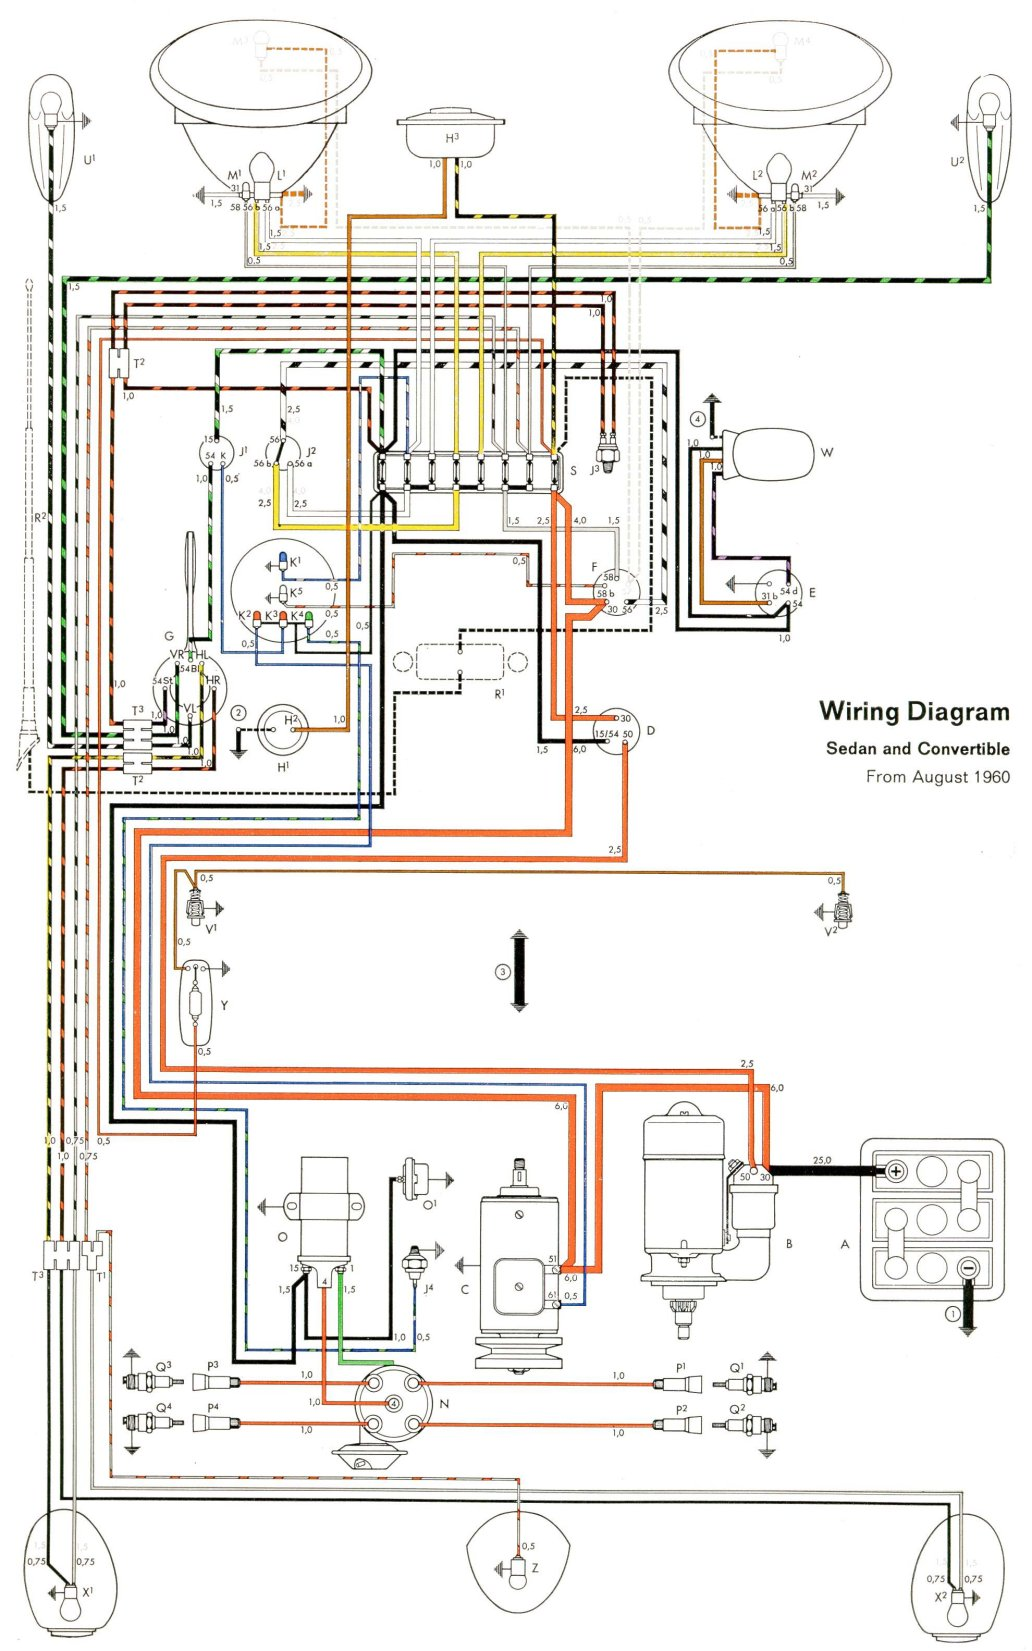 bug_61 thesamba com type 1 wiring diagrams 1969 bug wiring diagram at creativeand.co